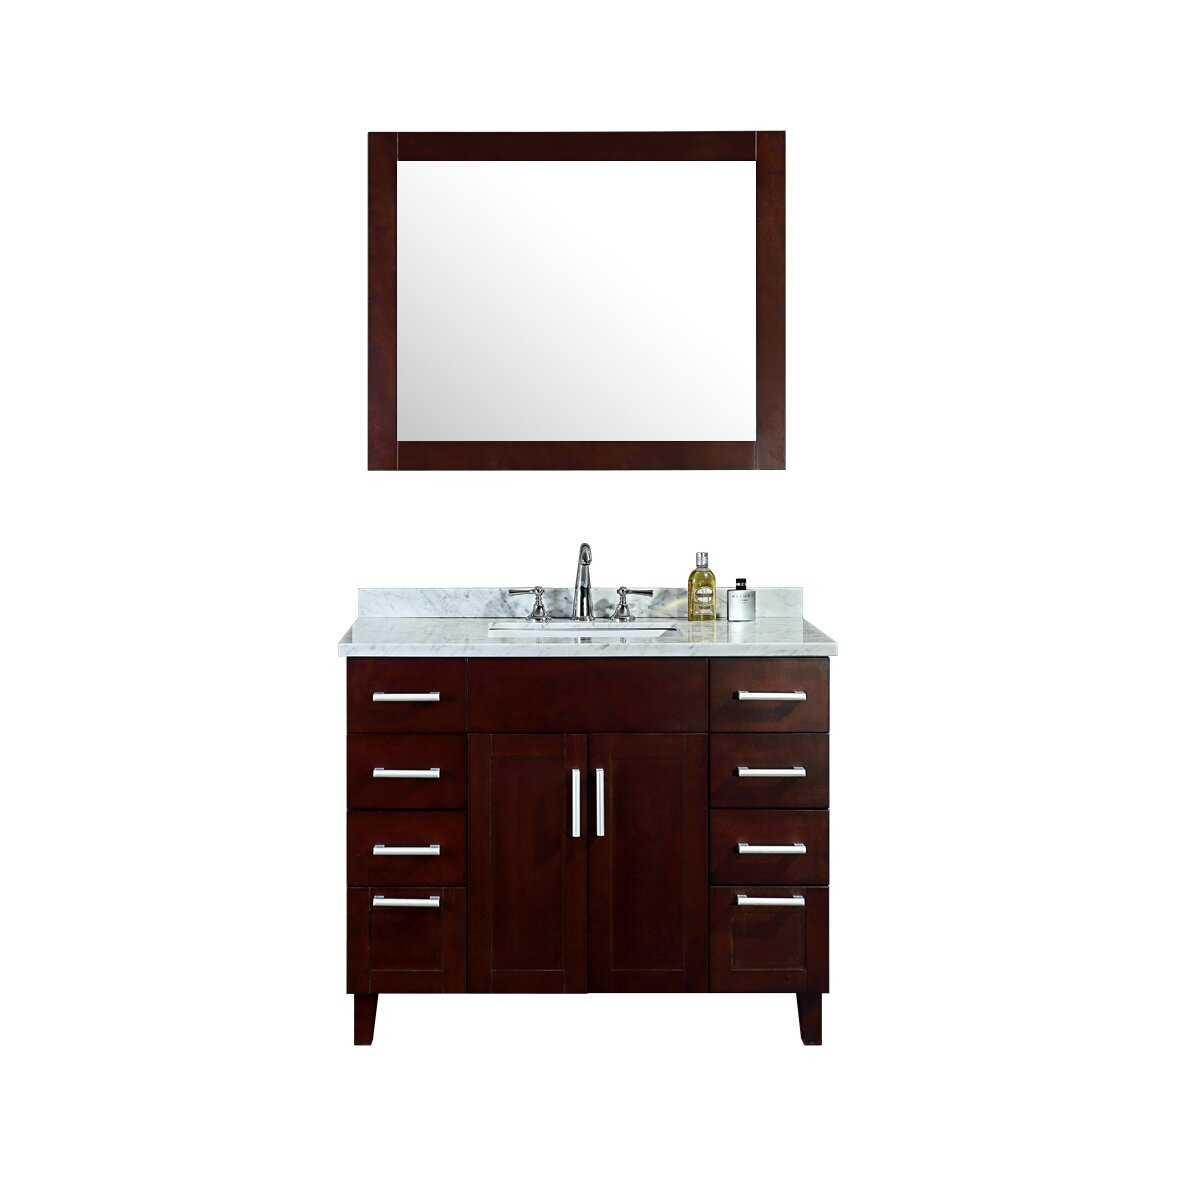 42 Bathroom Vanity Ariel Bath Frampton 42 Single Bathroom Vanity Set With Mirror